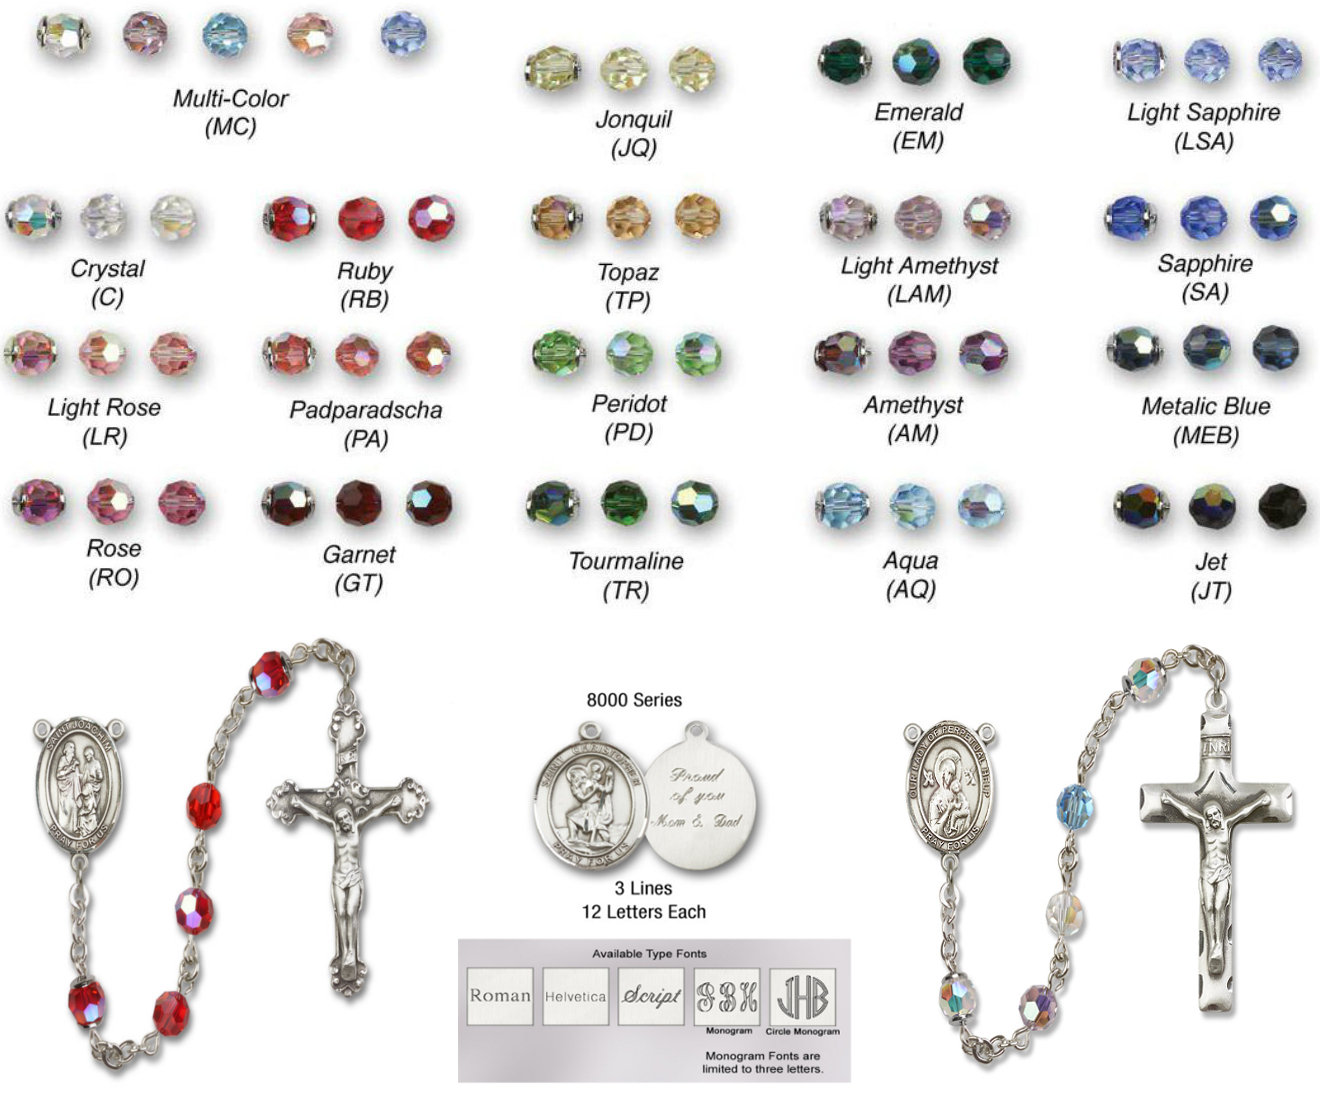 St All Sterling Silver Rosary with Light Sapphire Austrian Tin Cut Aurora Borealis Beads 6mm Swarovski Sebastian//Tennis Center is the Patron Saint of Athletes//Soldiers.